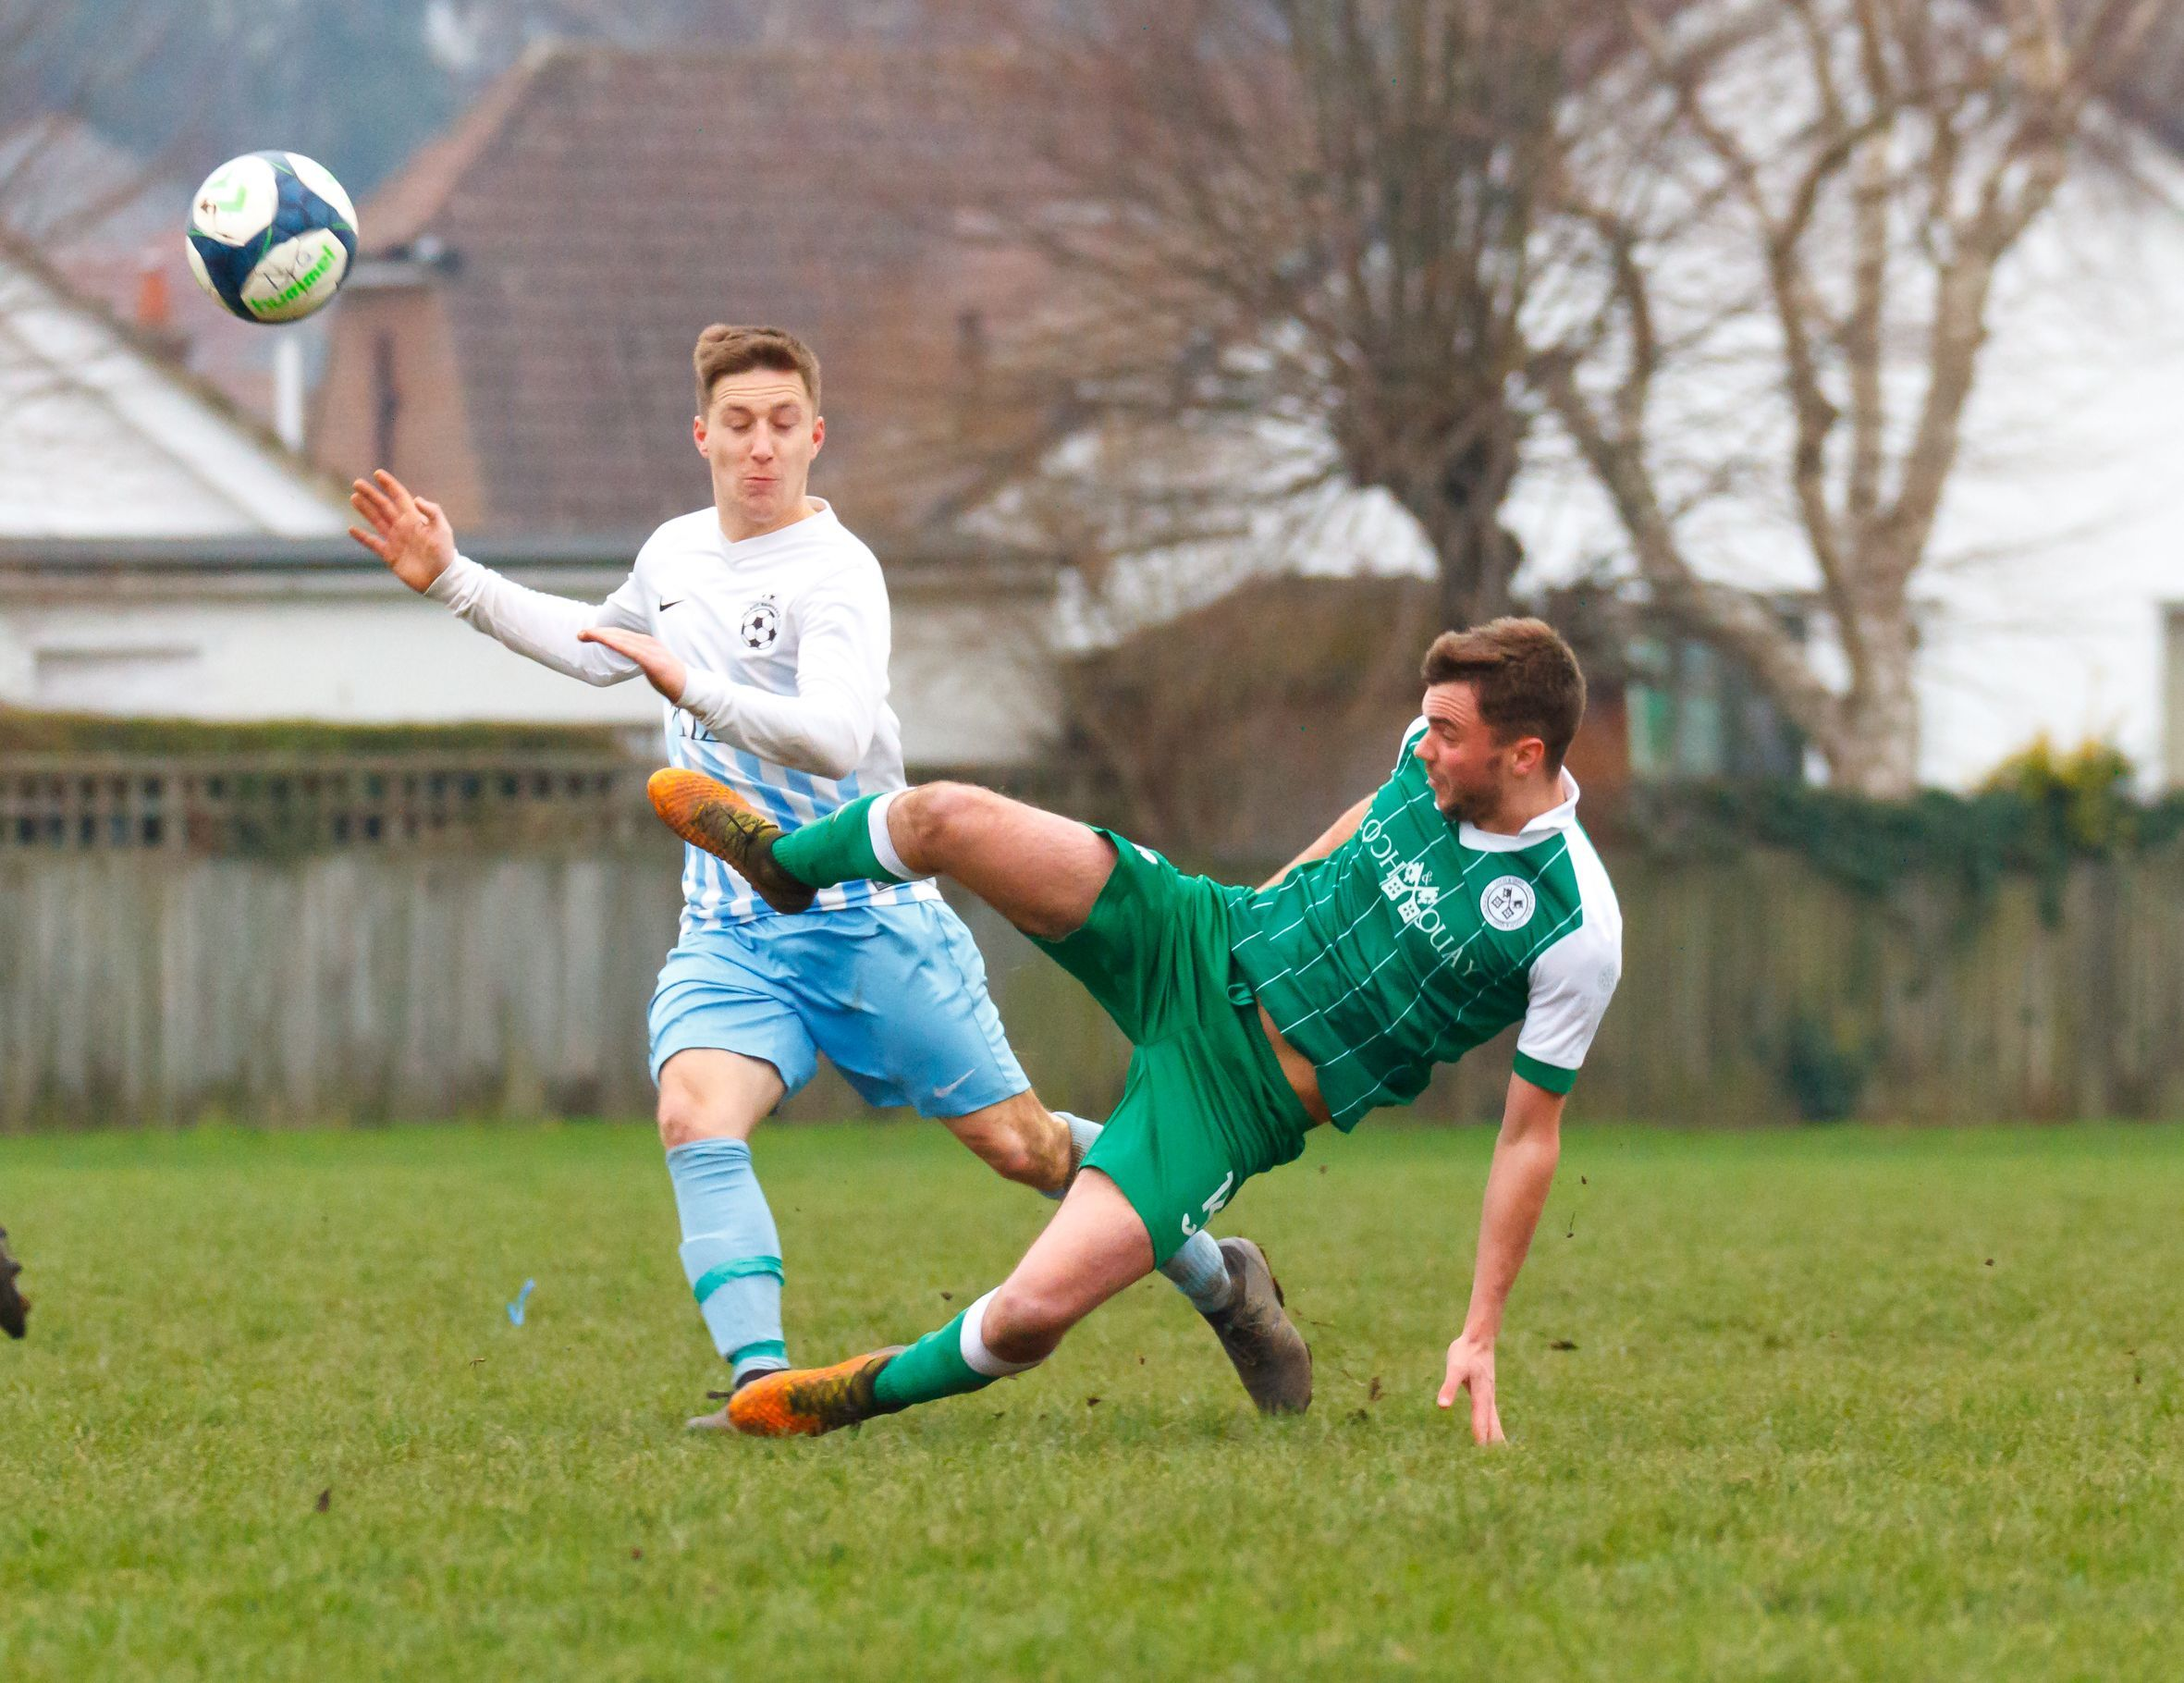 OFF HIS FEET: Action from Loch & Quay's win over Talbot Rangers in the Hampshire Sunday Senior Cup (Picture: BHFL)